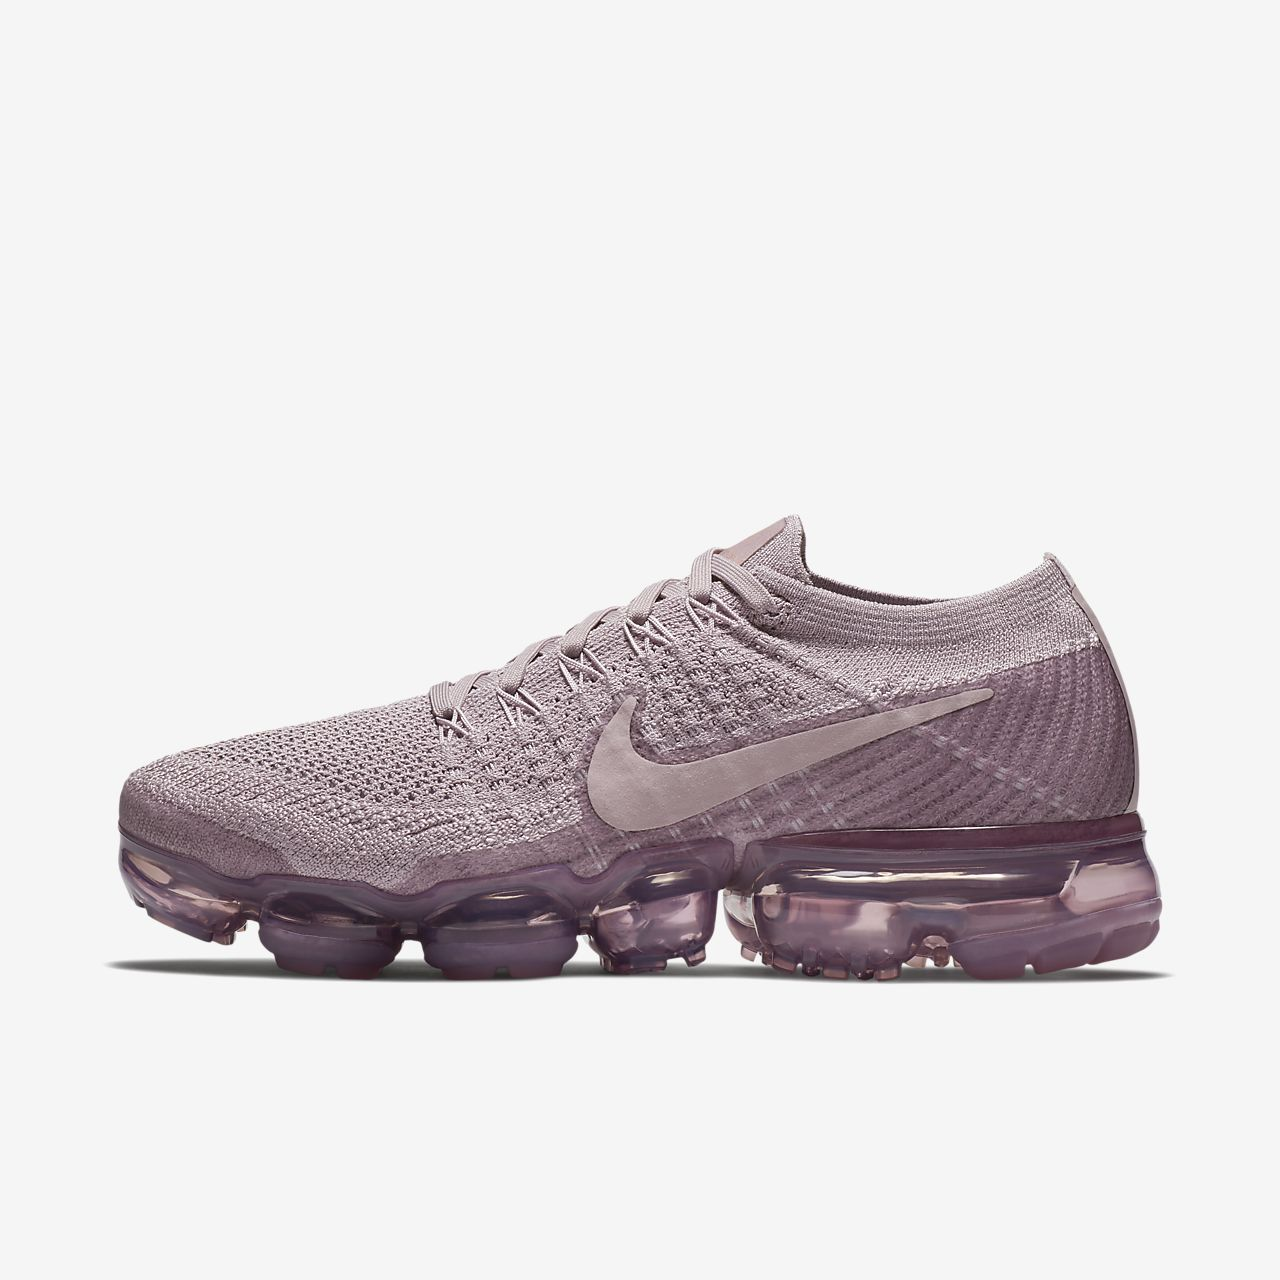 Dazzling Nike Air VaporMax Violet Dust Plum Fog 849557 500 Women's Running Shoes 849557 500